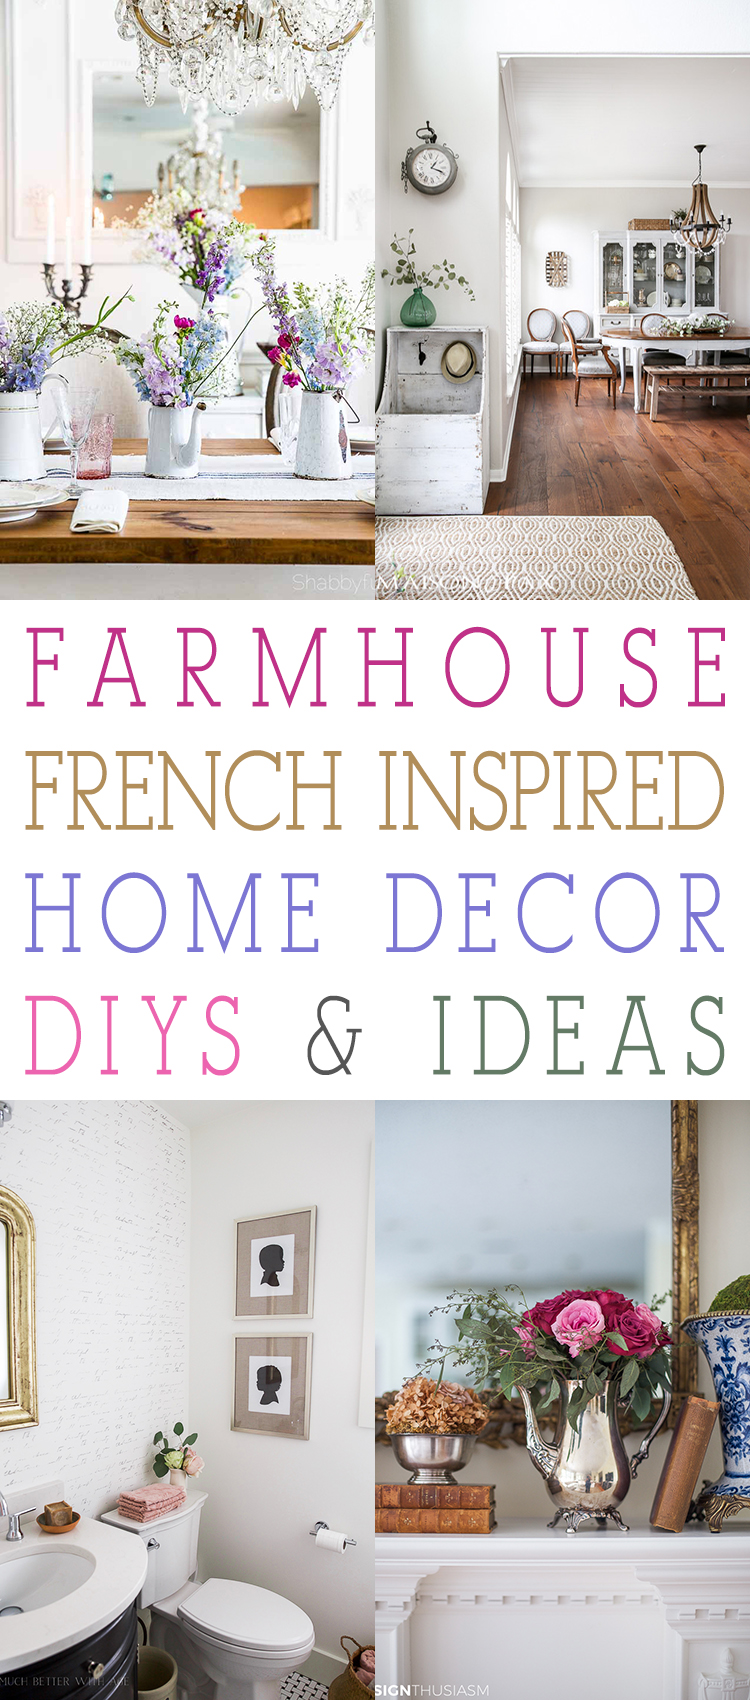 Farmhouse French Inspired Home Decor Ideas and DIYS - The Cottage Market